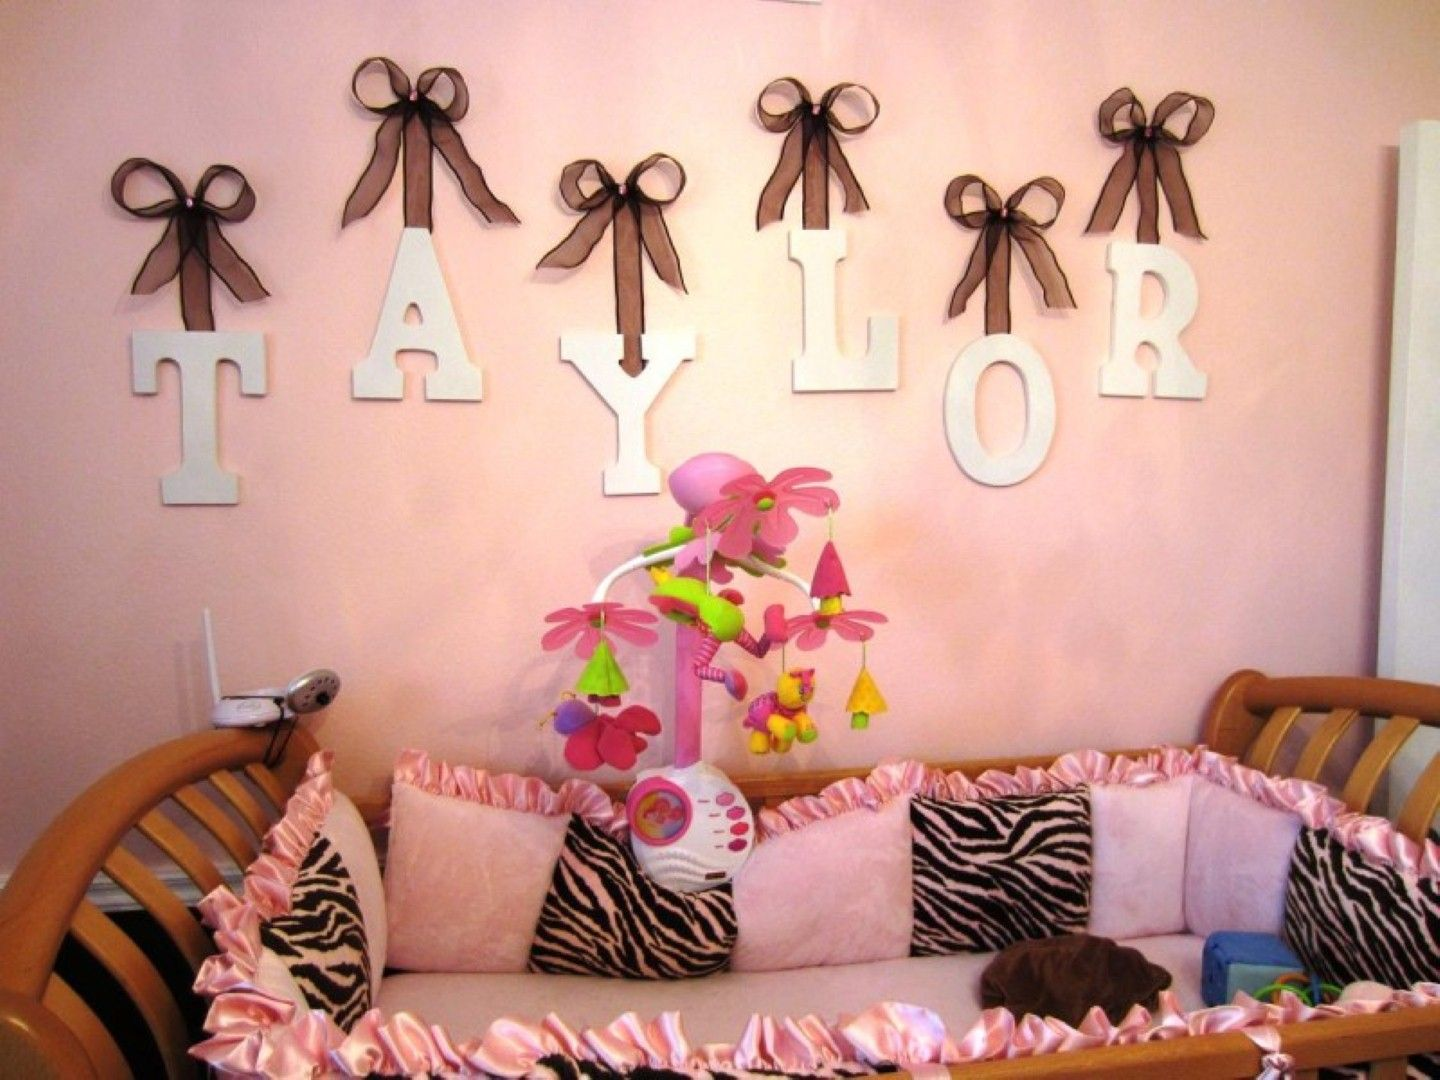 Diy bedroom decor ideas pinterest - Small Toddler Girl Room Ideas